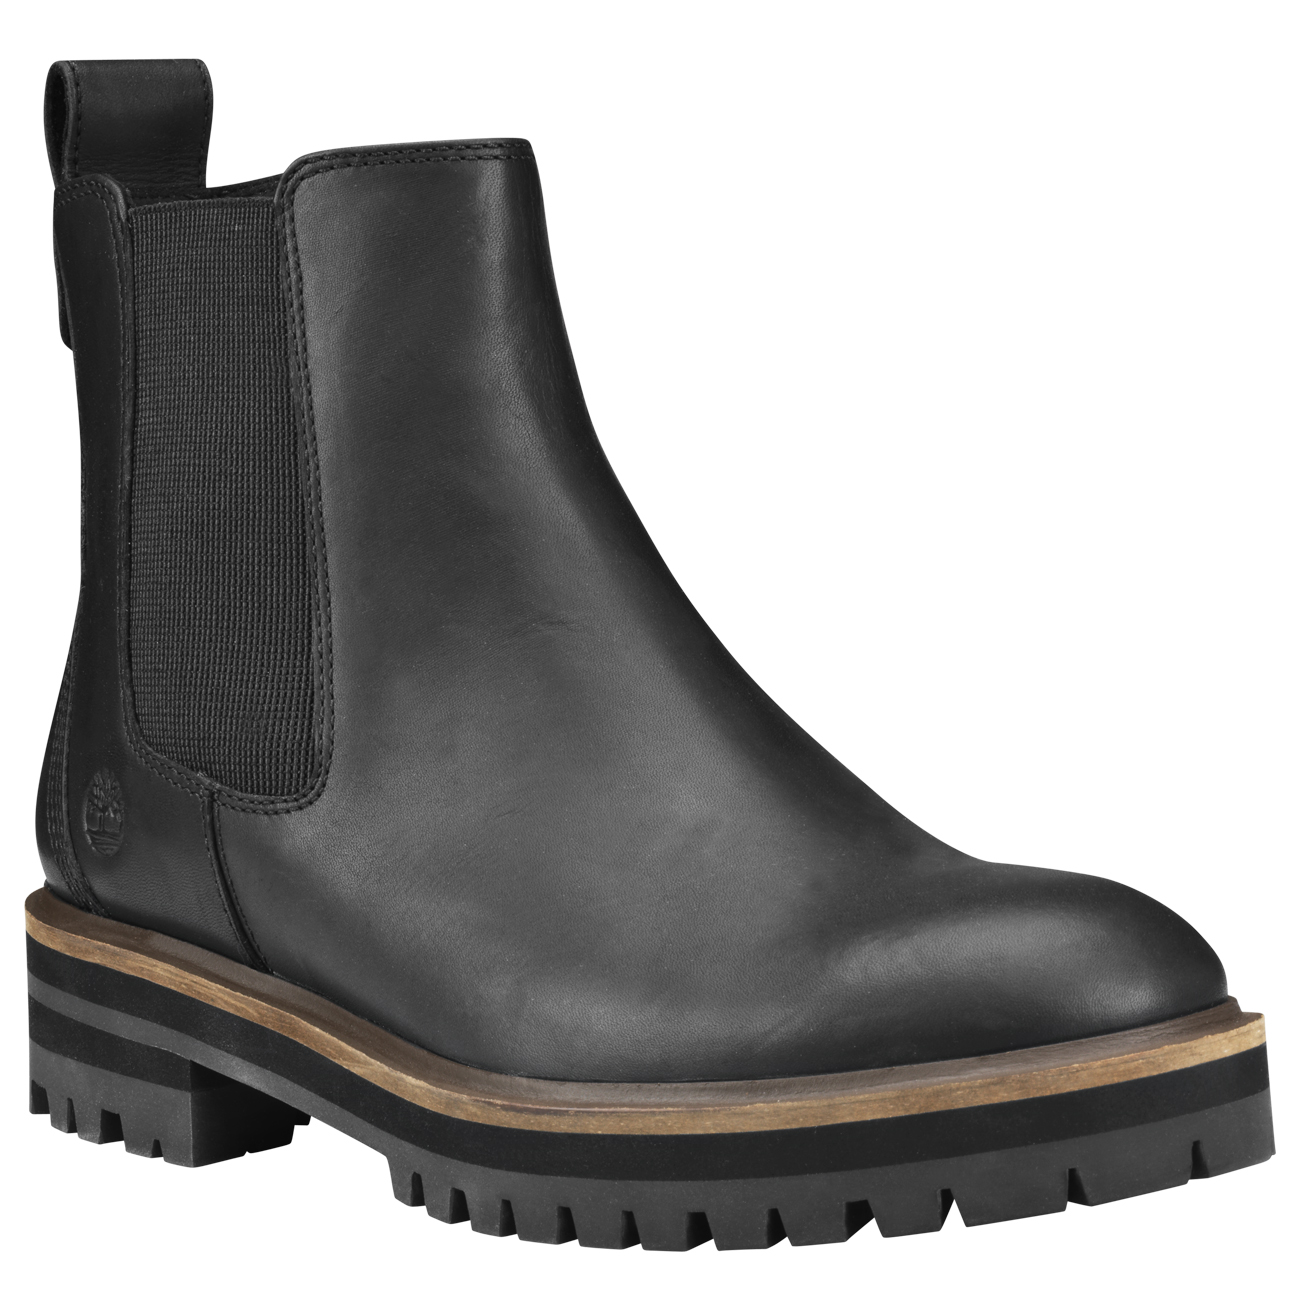 Timberland London Square Double Gore Chelsea